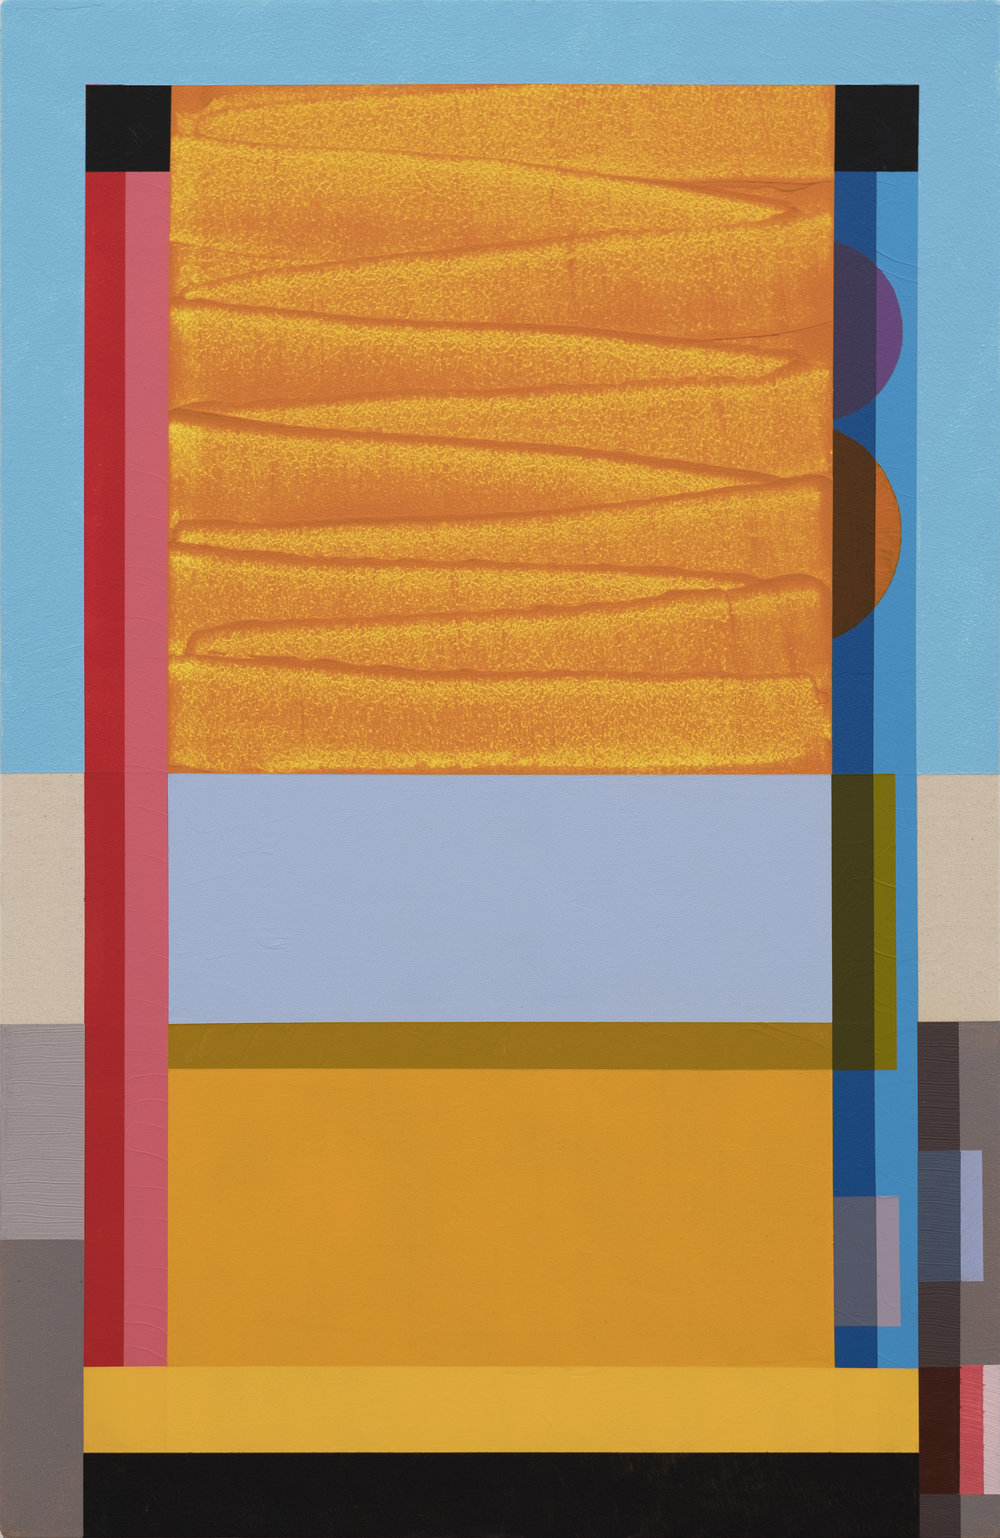 Tony Larson  Loading , 2018 flashe, acrylic, traffic marker paint on raw canvas 36h x 24w in